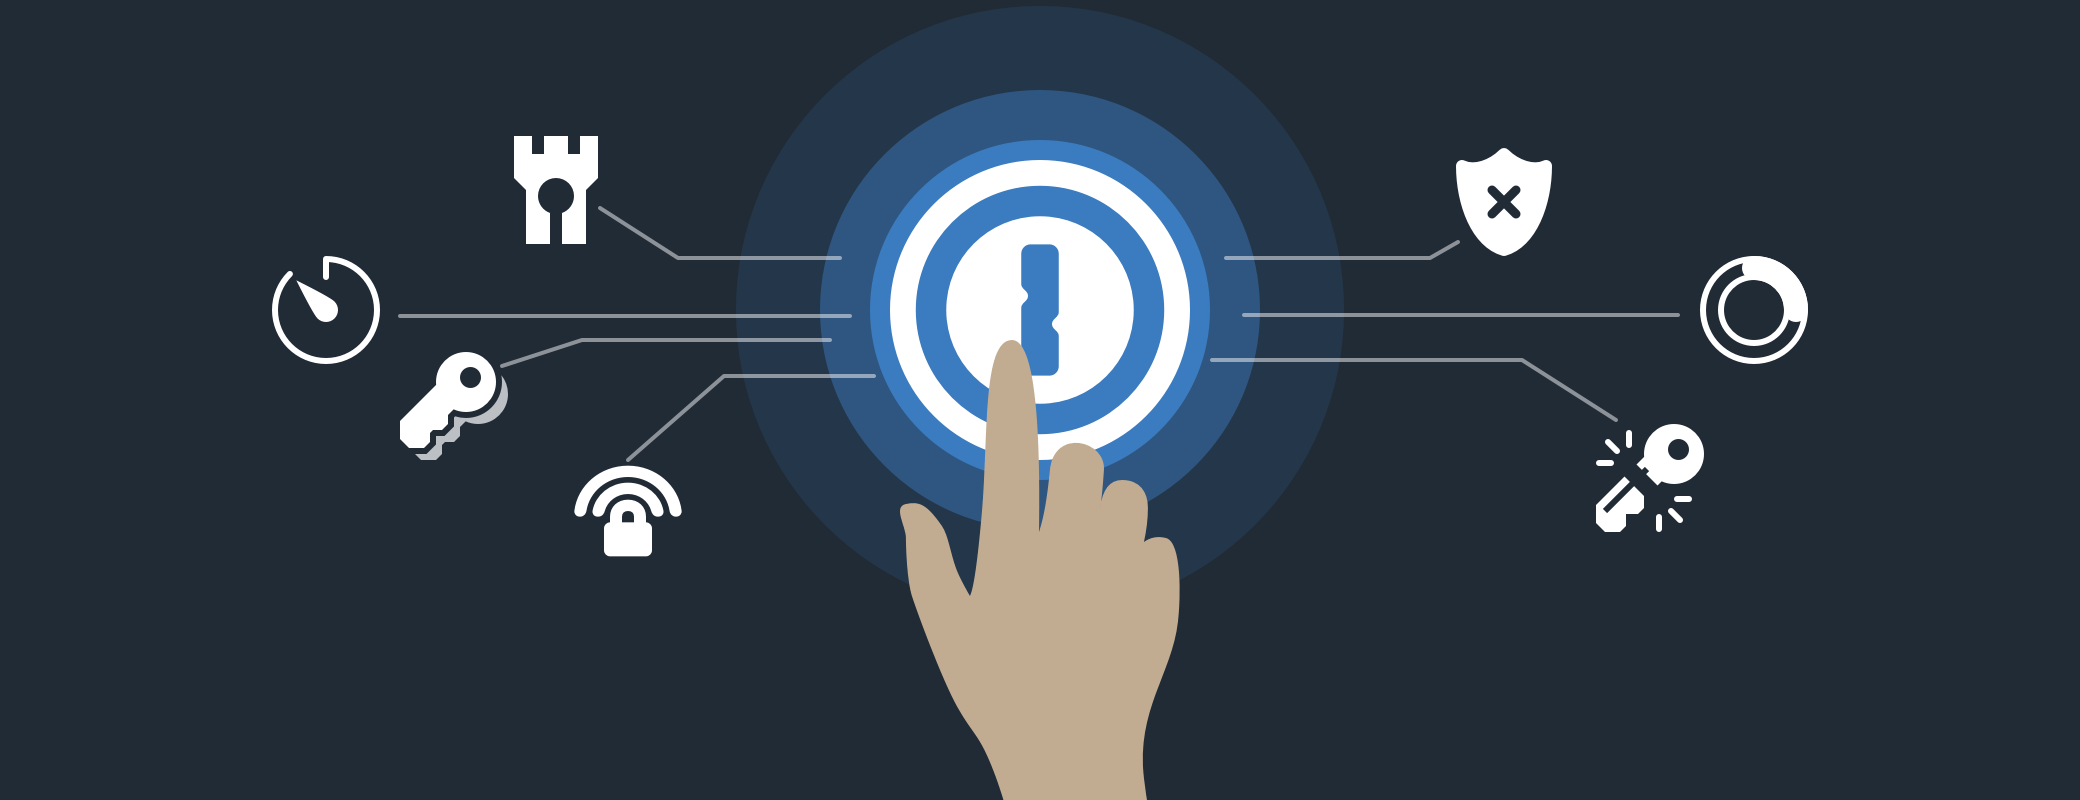 Does Australia's access and assistance law impact 1Password?